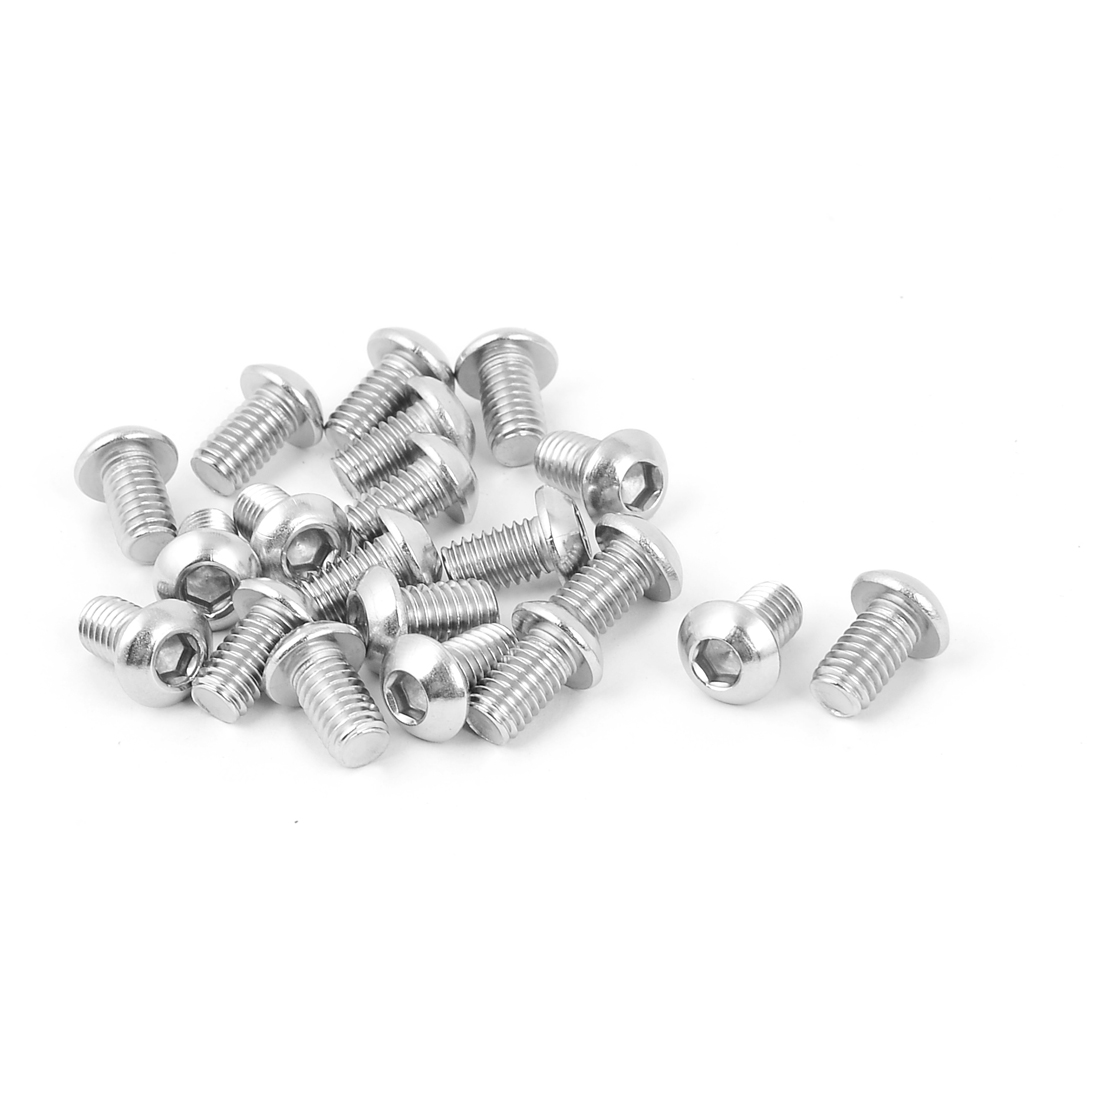 M6 x 10mm Full Thread Button Head Socket Cap Screw Silver Tone 20 Pcs